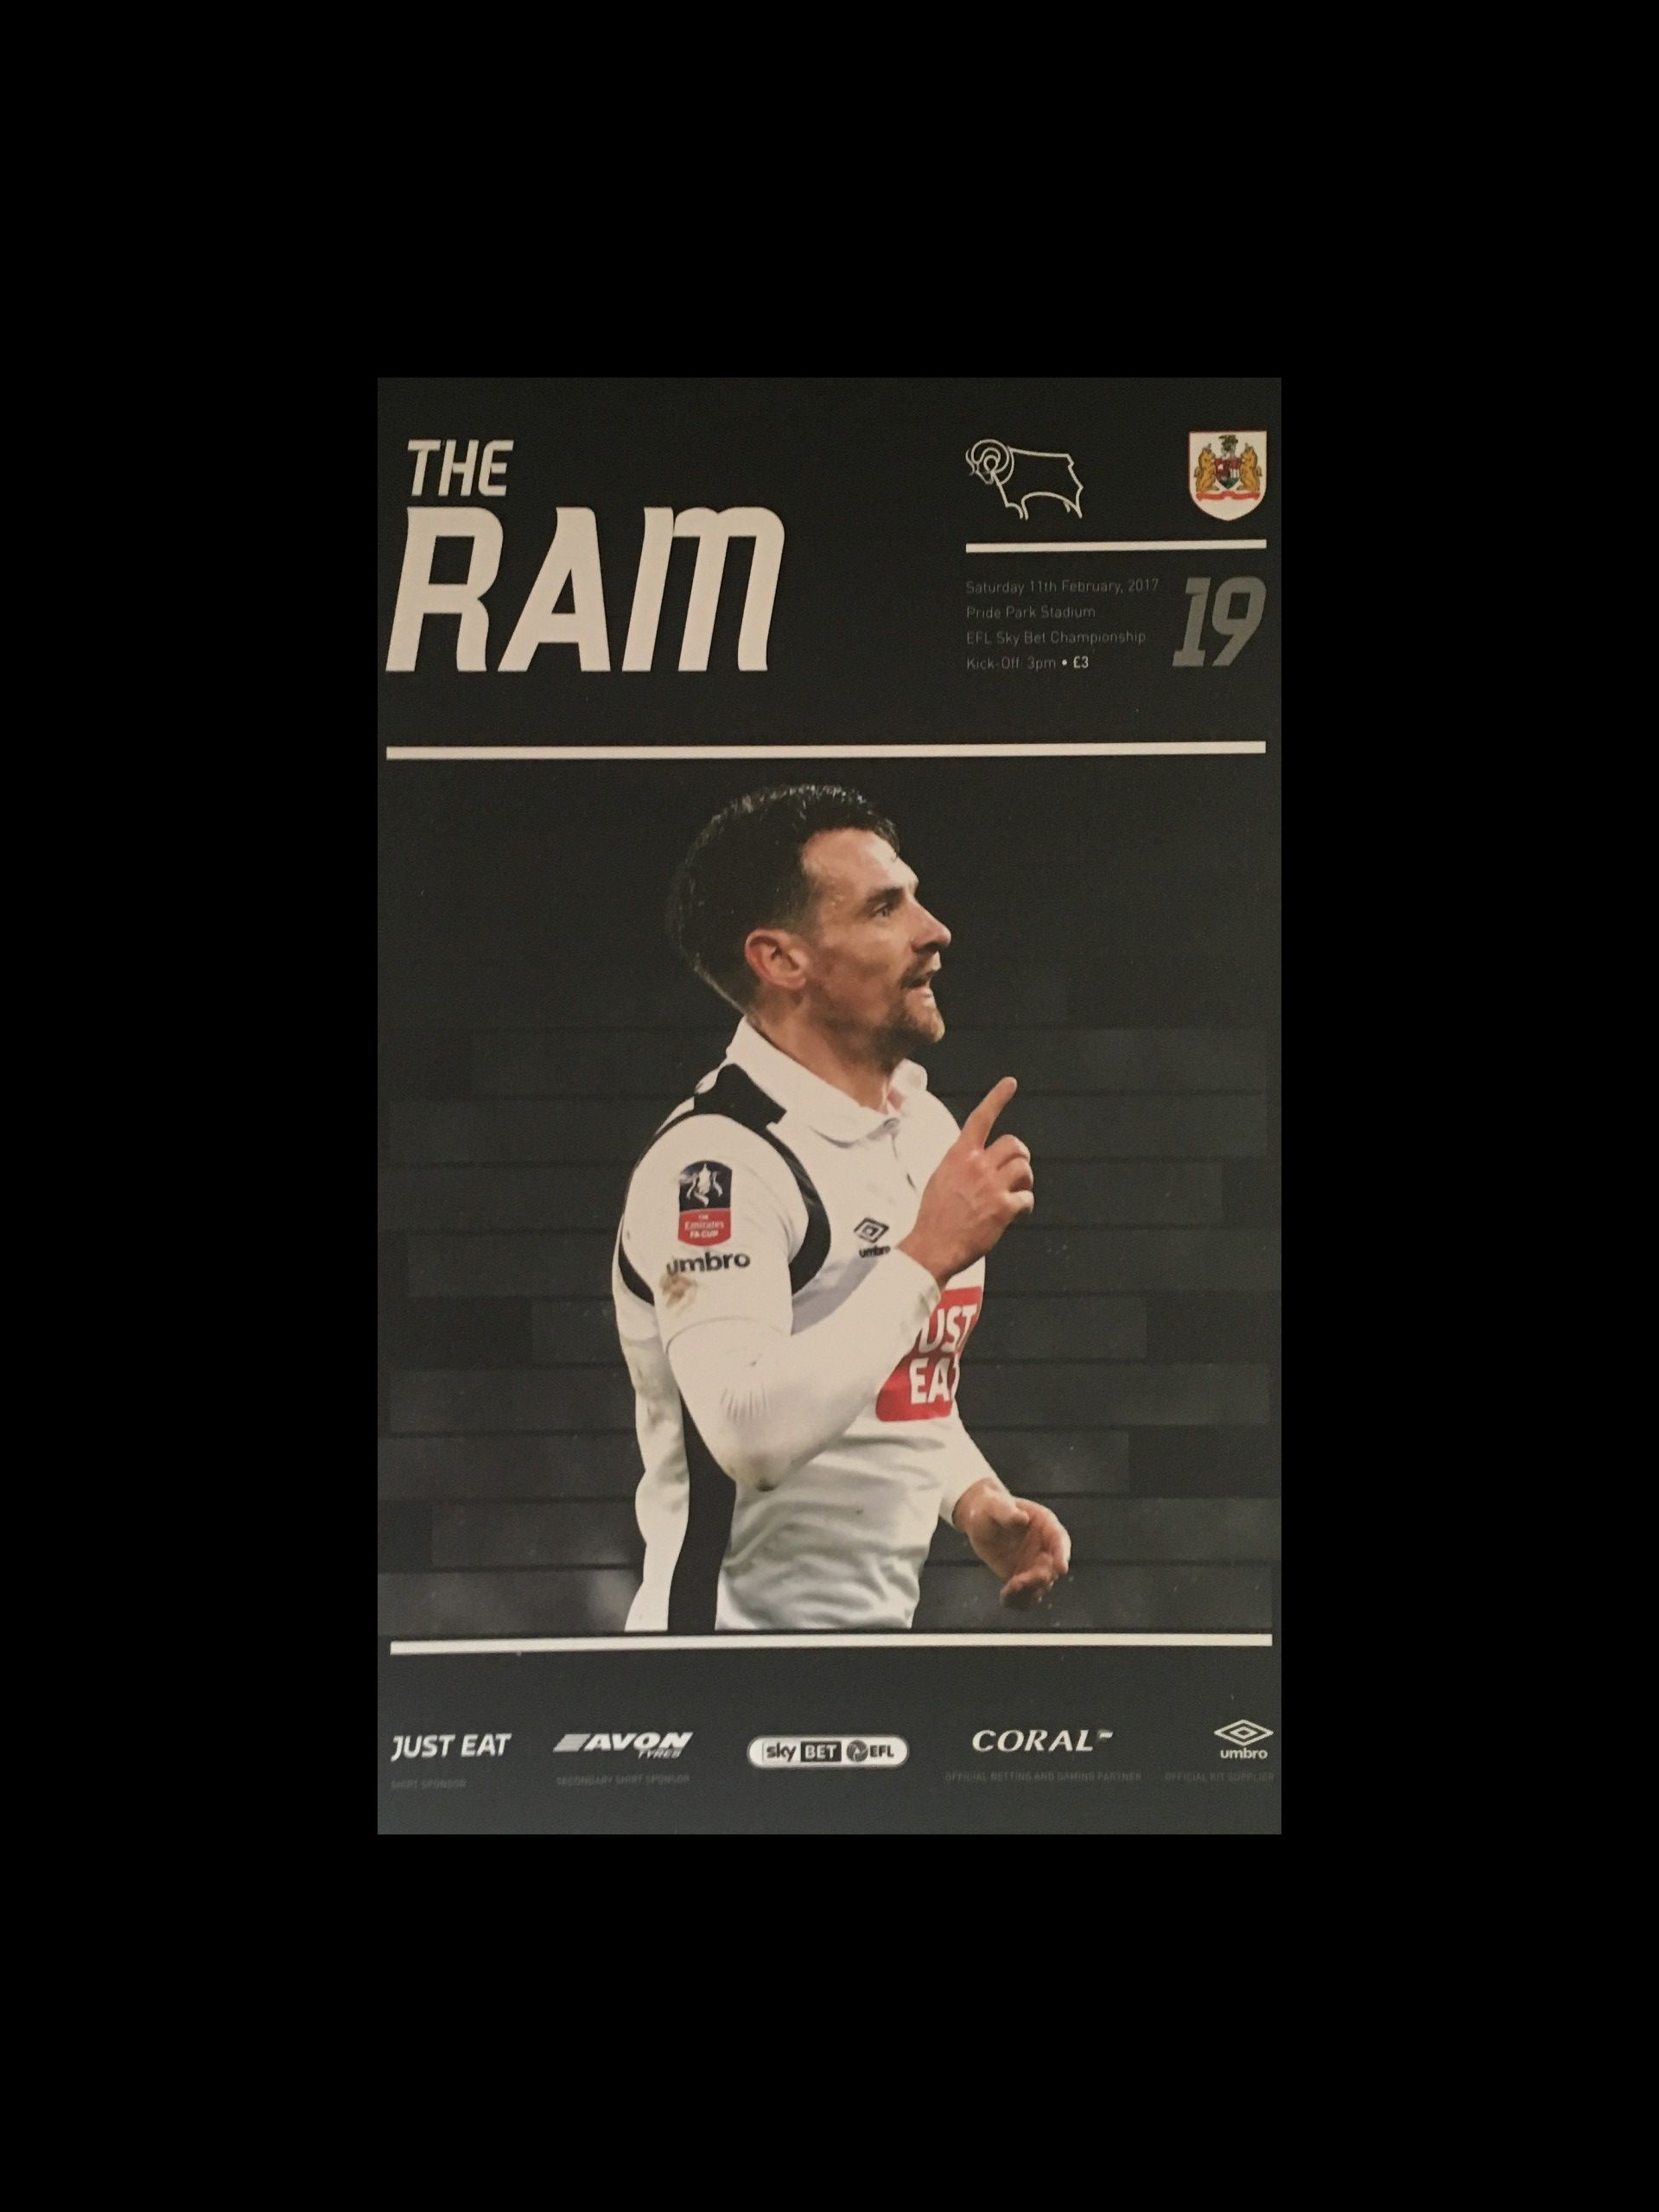 Derby County v Bristol City 11-02-17 Programme